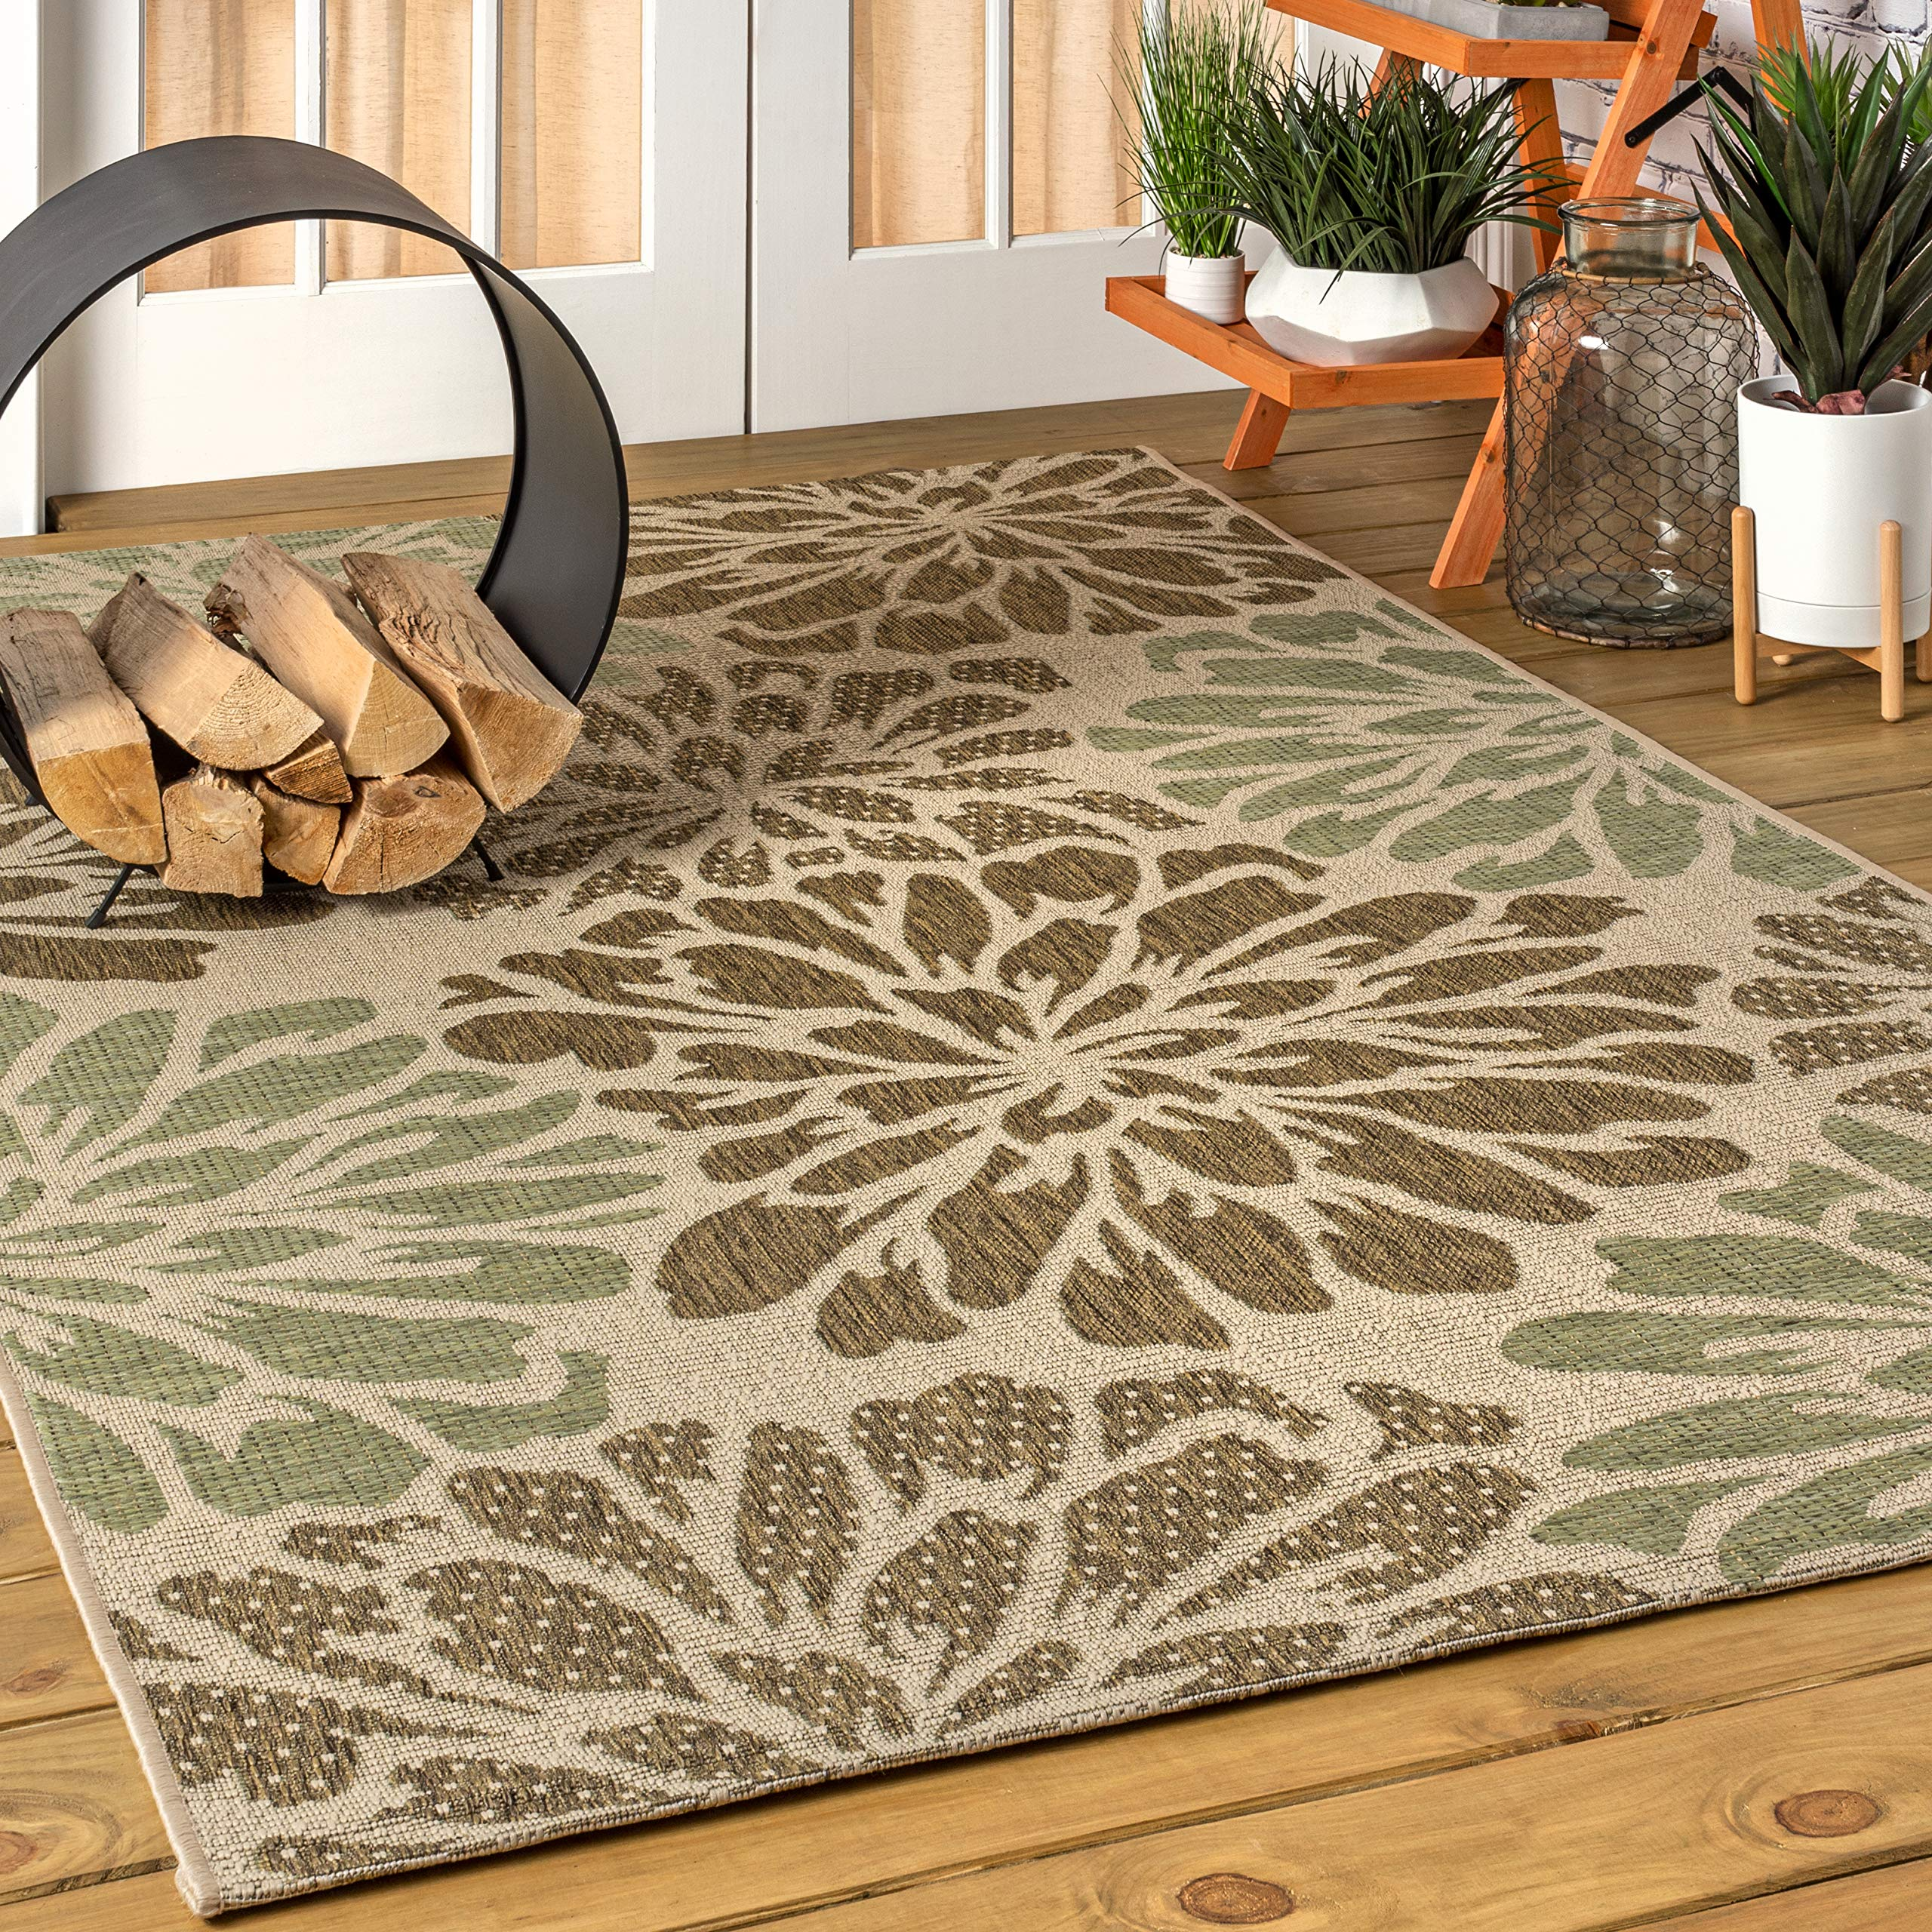 JONATHAN Y SMB110 Zinnia Modern Floral Textured Weave Indoor/Outdoor Sage/Brown 8 ft. x 10 ft. Area RugEasy Cleaning, for High Traffic, Kitchen, Living Room, Backyard